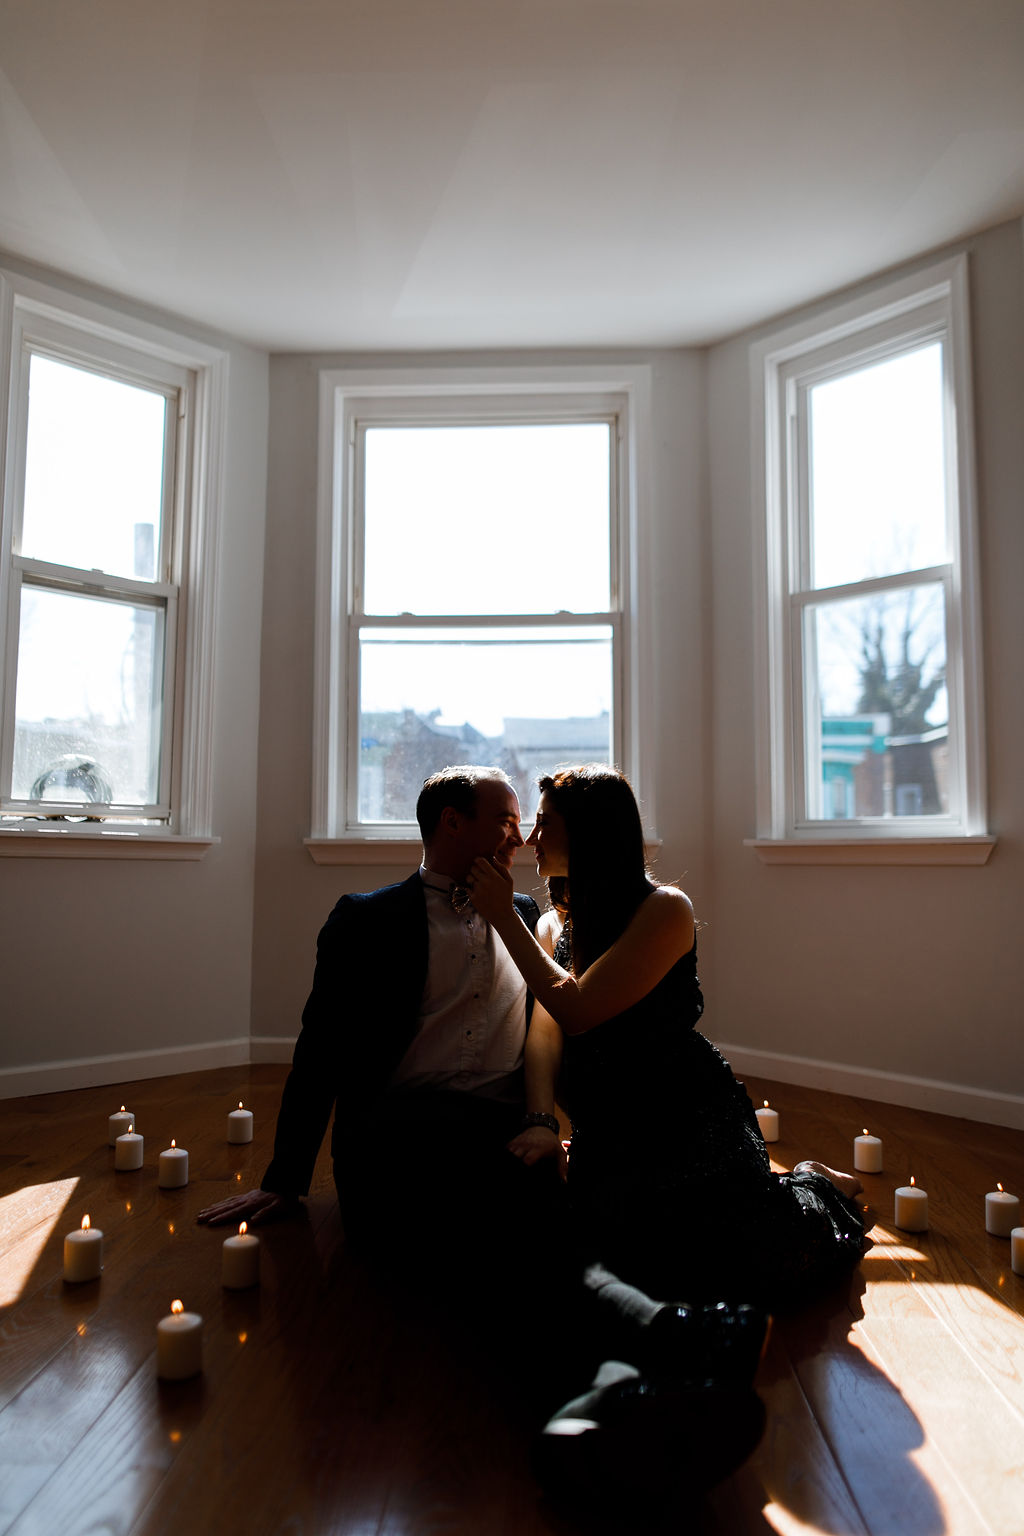 G&G New Home Philly LGBTQ Engagement Session31.jpg